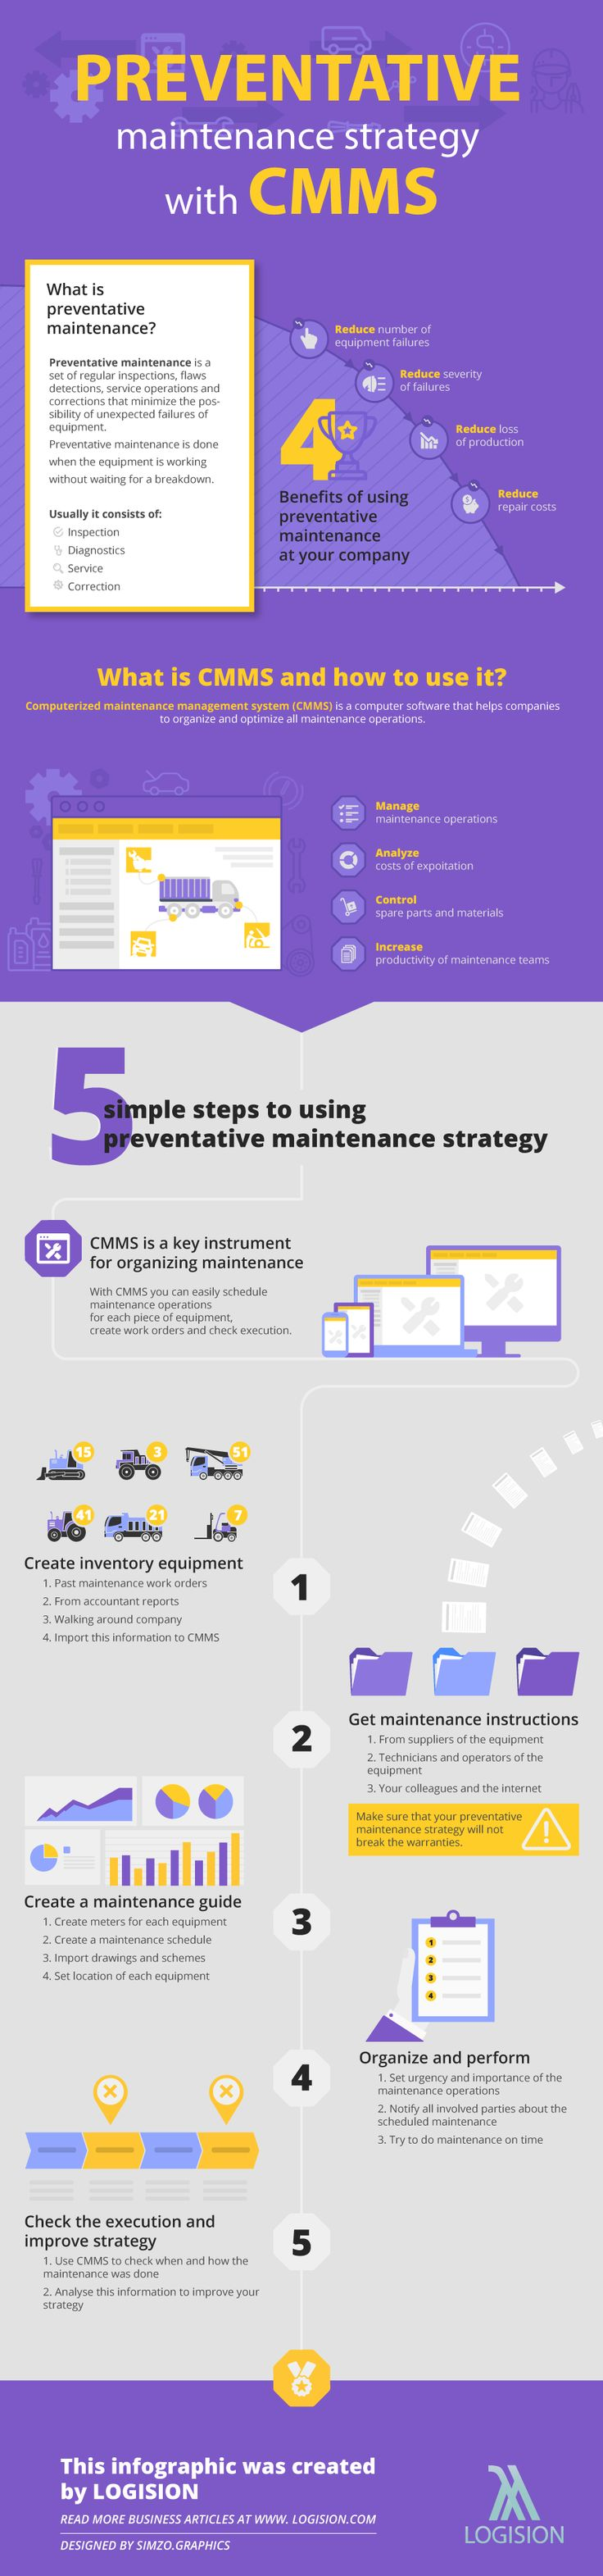 Preventative maintenance strategy with CMMS